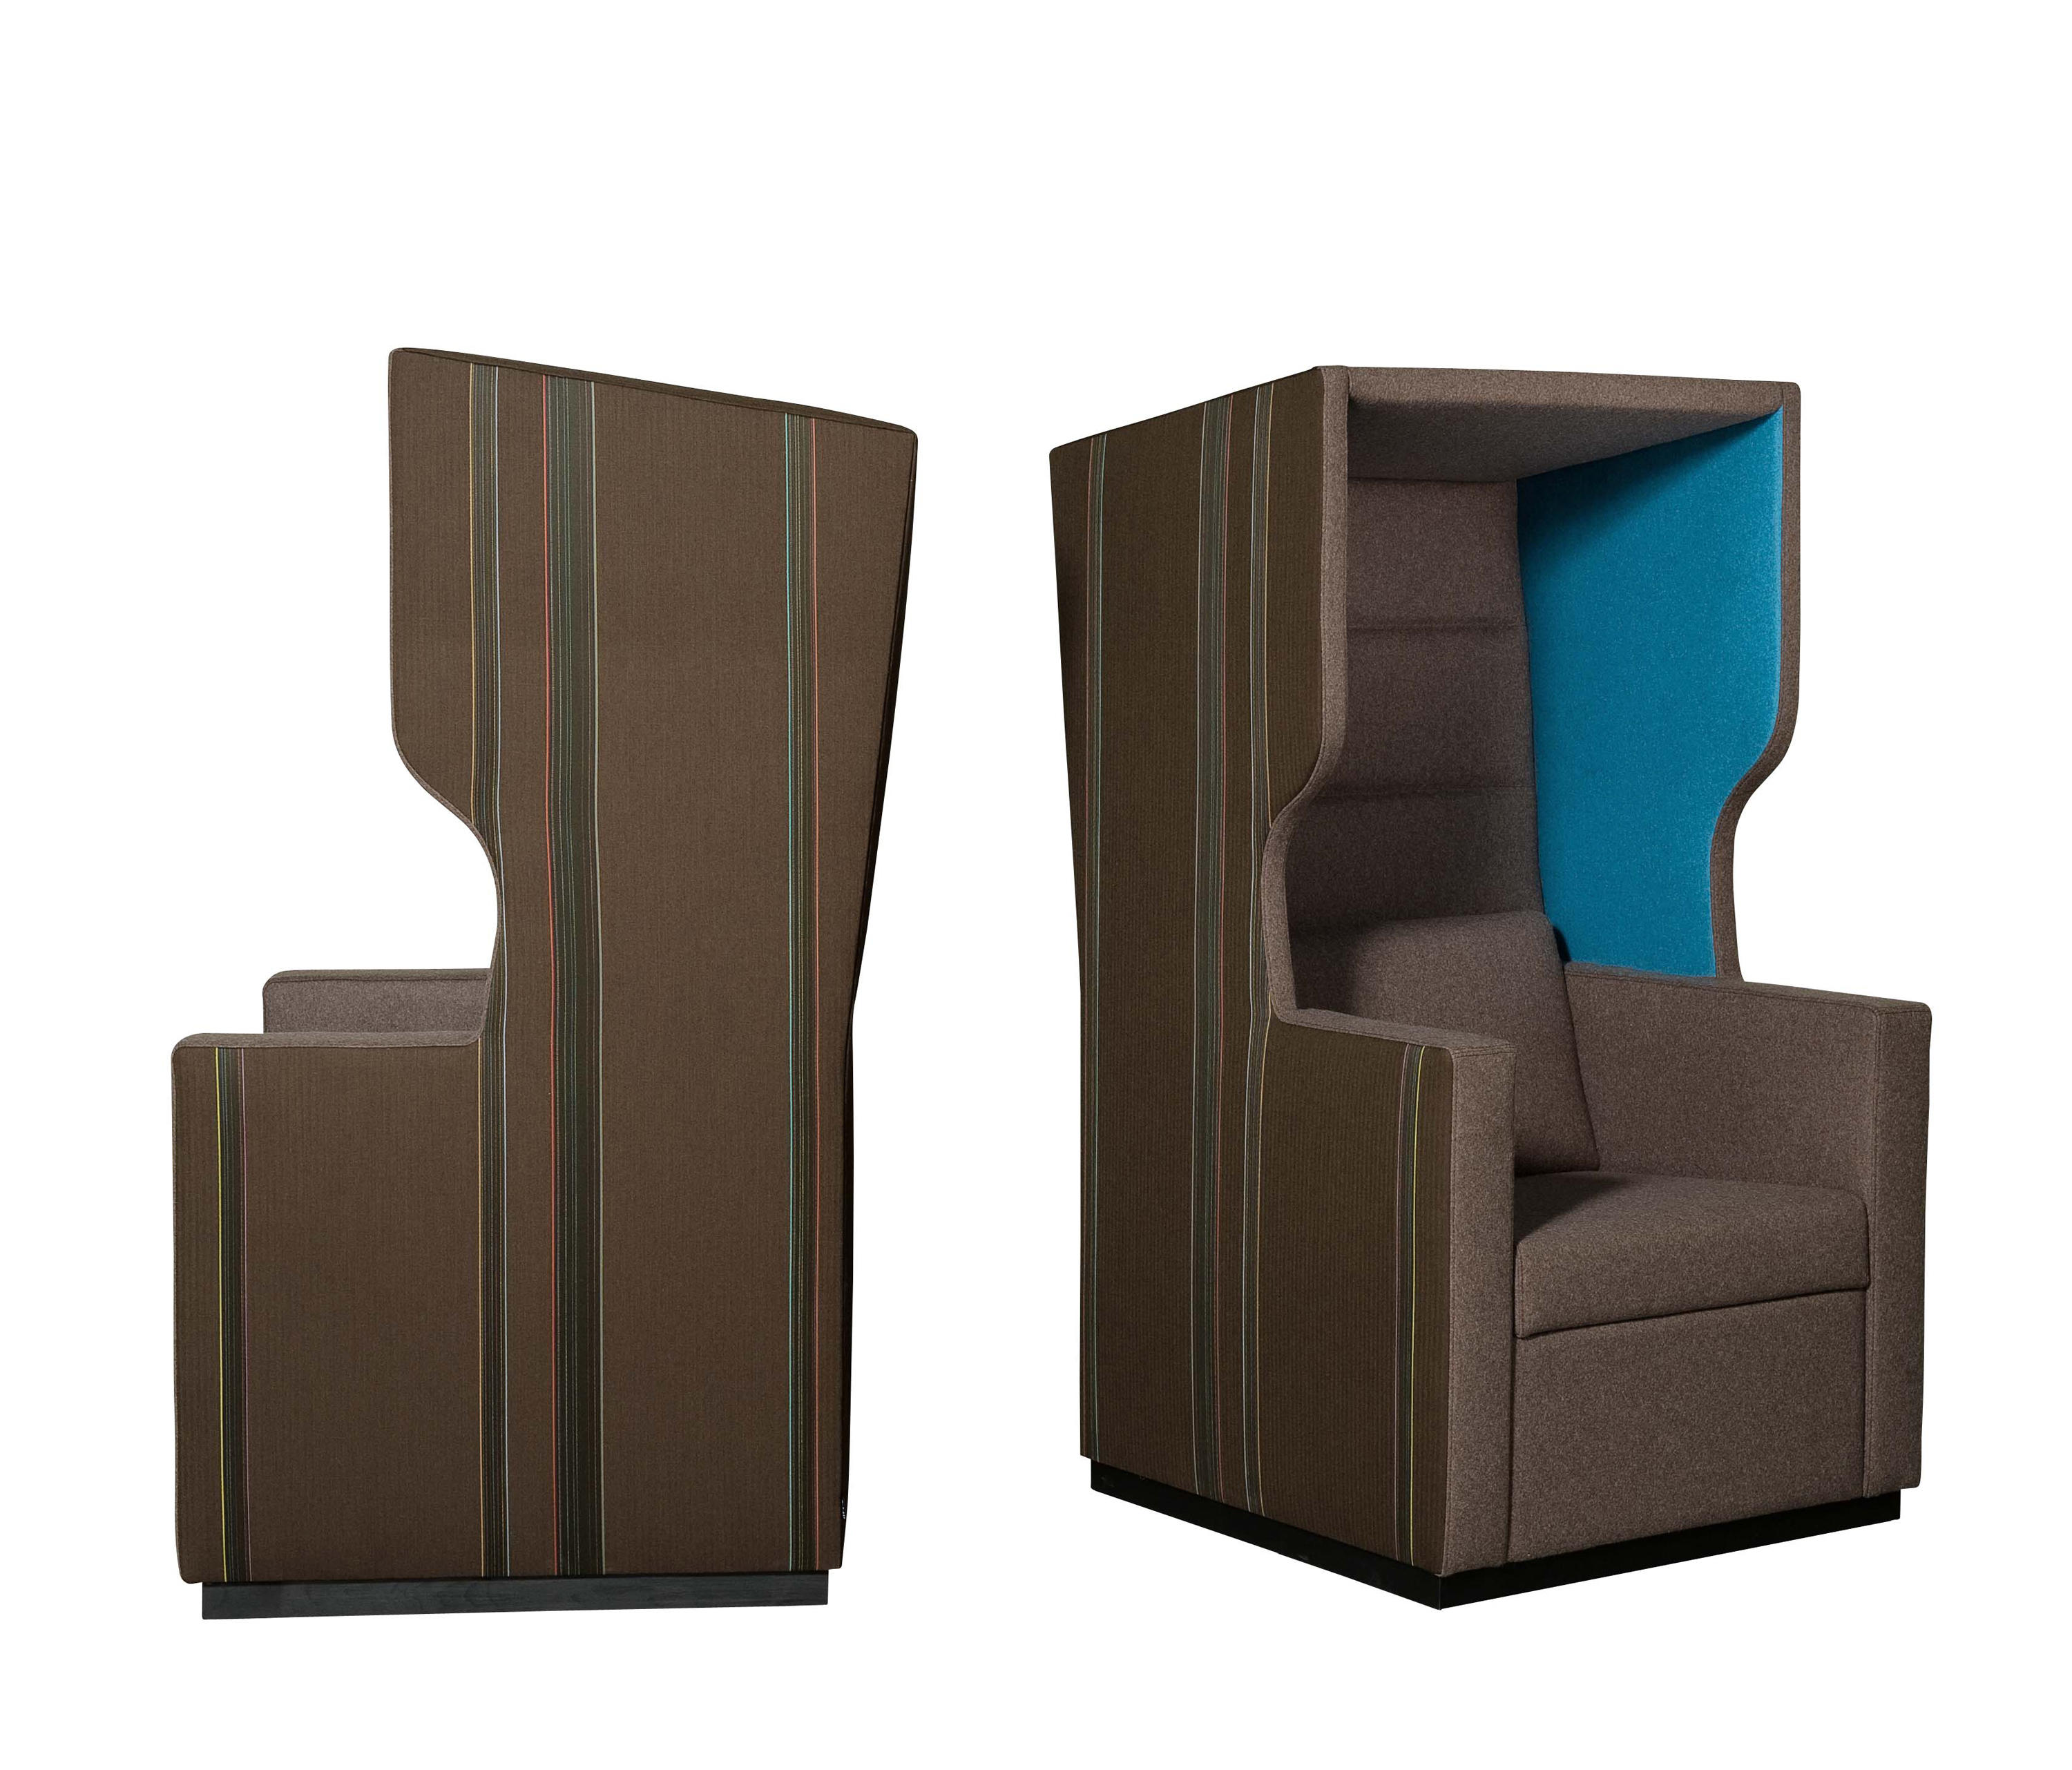 TANK CHAIR Lounge chairs from Palau